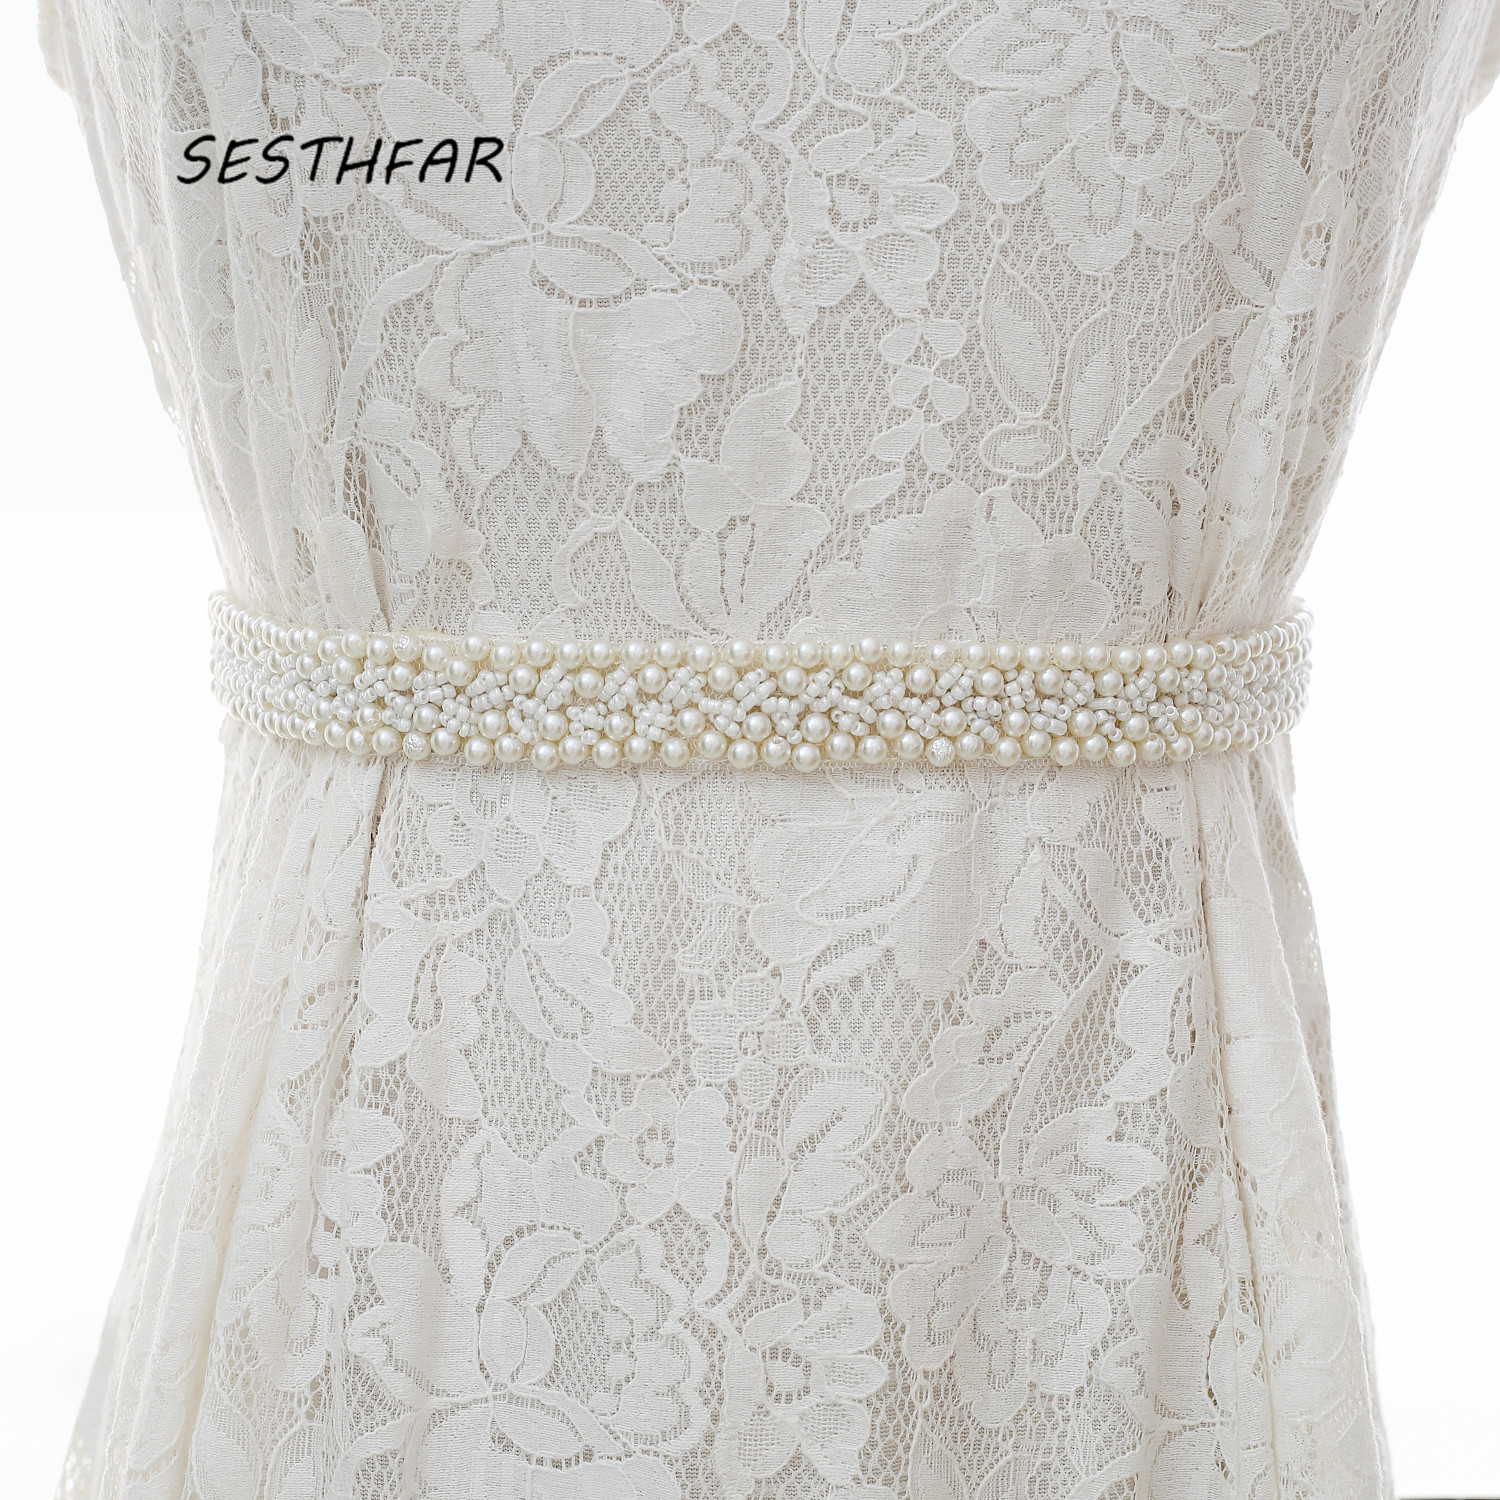 Pearls Wedding Belts Handmade Bridal Belts Fashionable Pearl Beaded Bridal Sashes Wedding Accessories J164